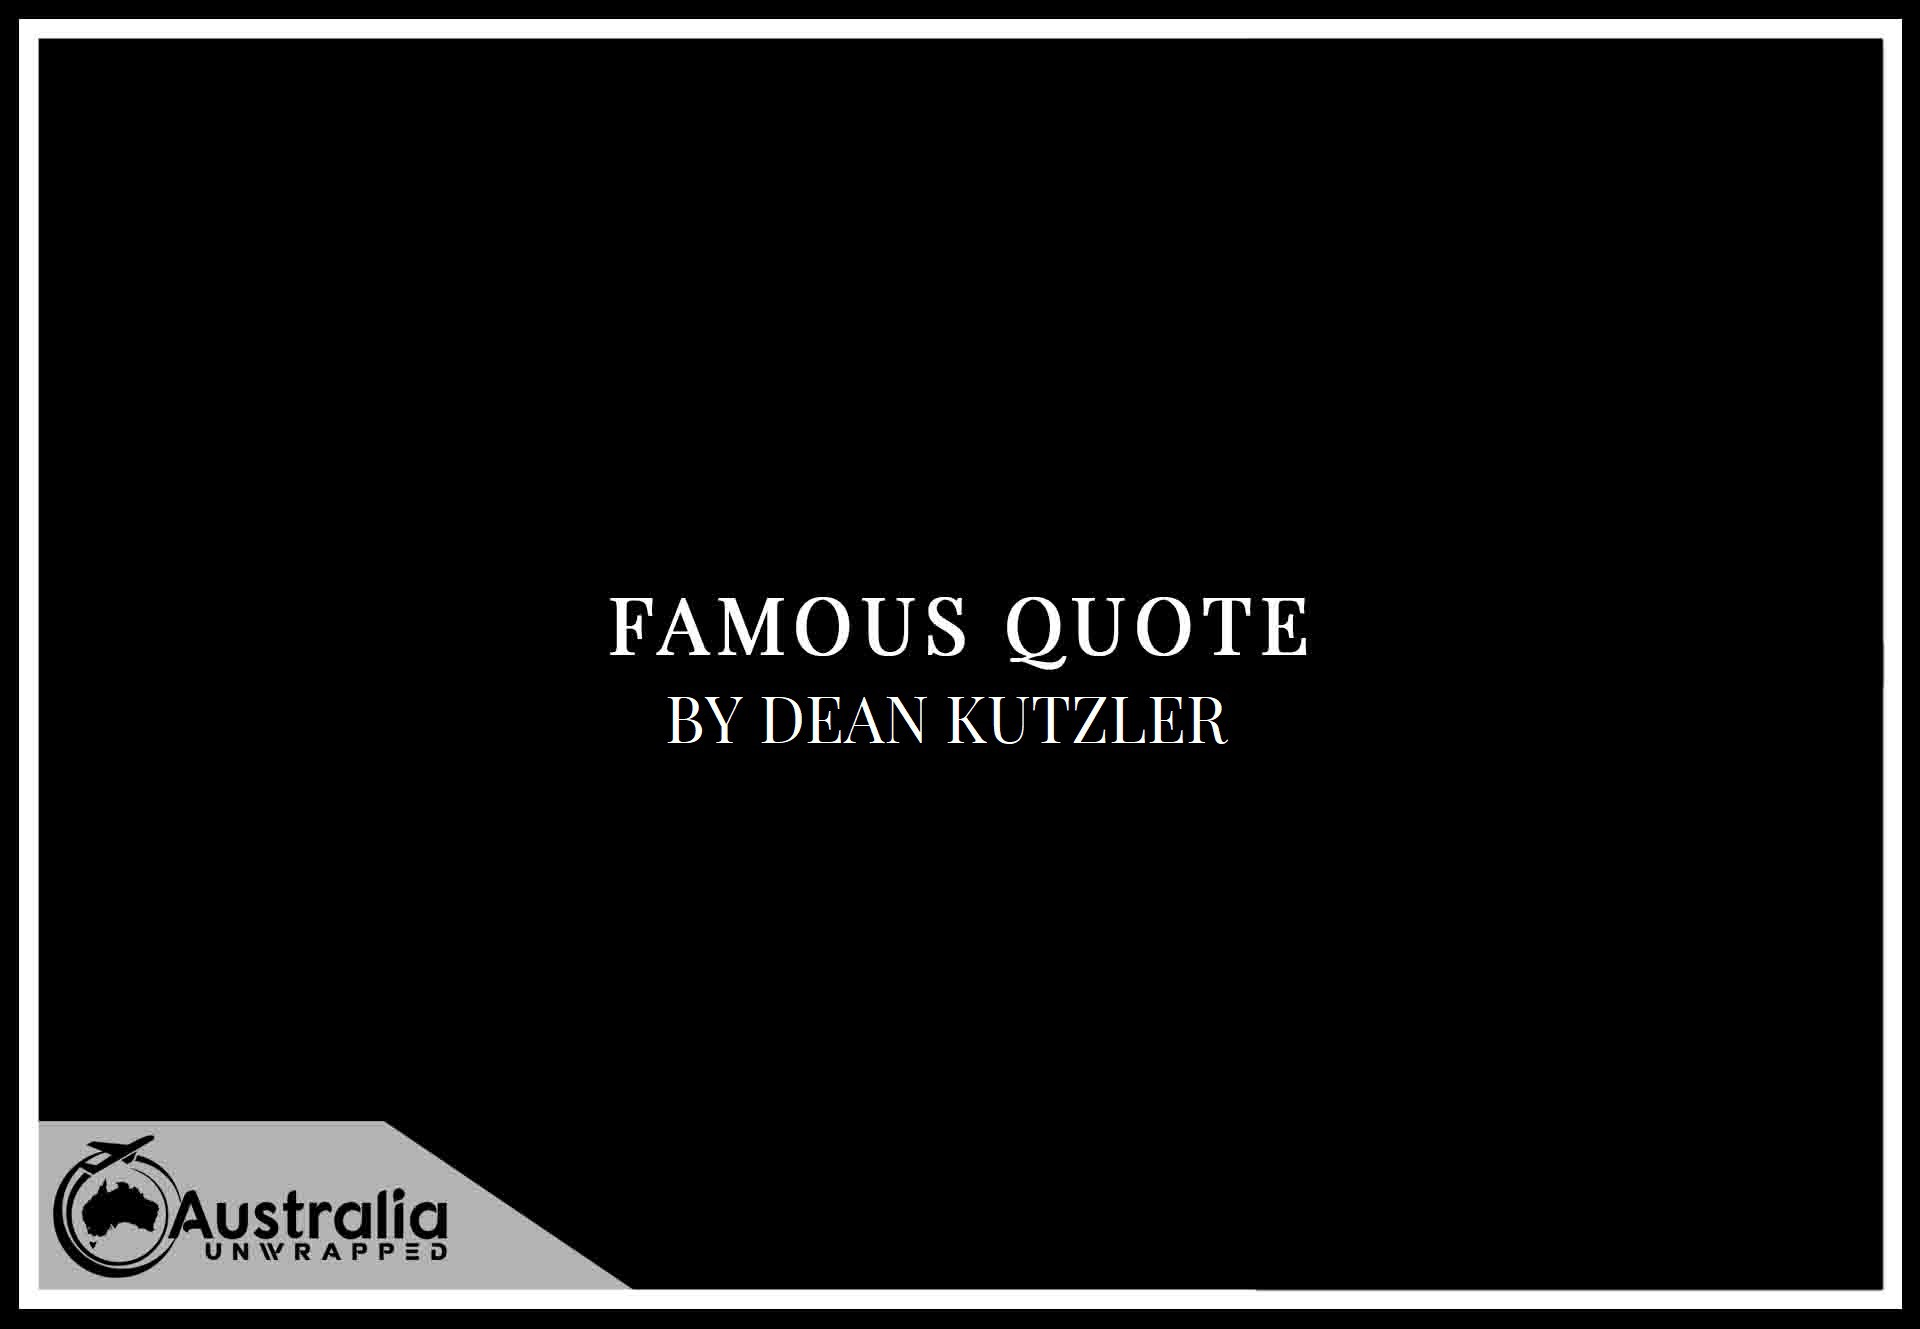 Top 1 Famous Quotes by Author Dean Kutzler